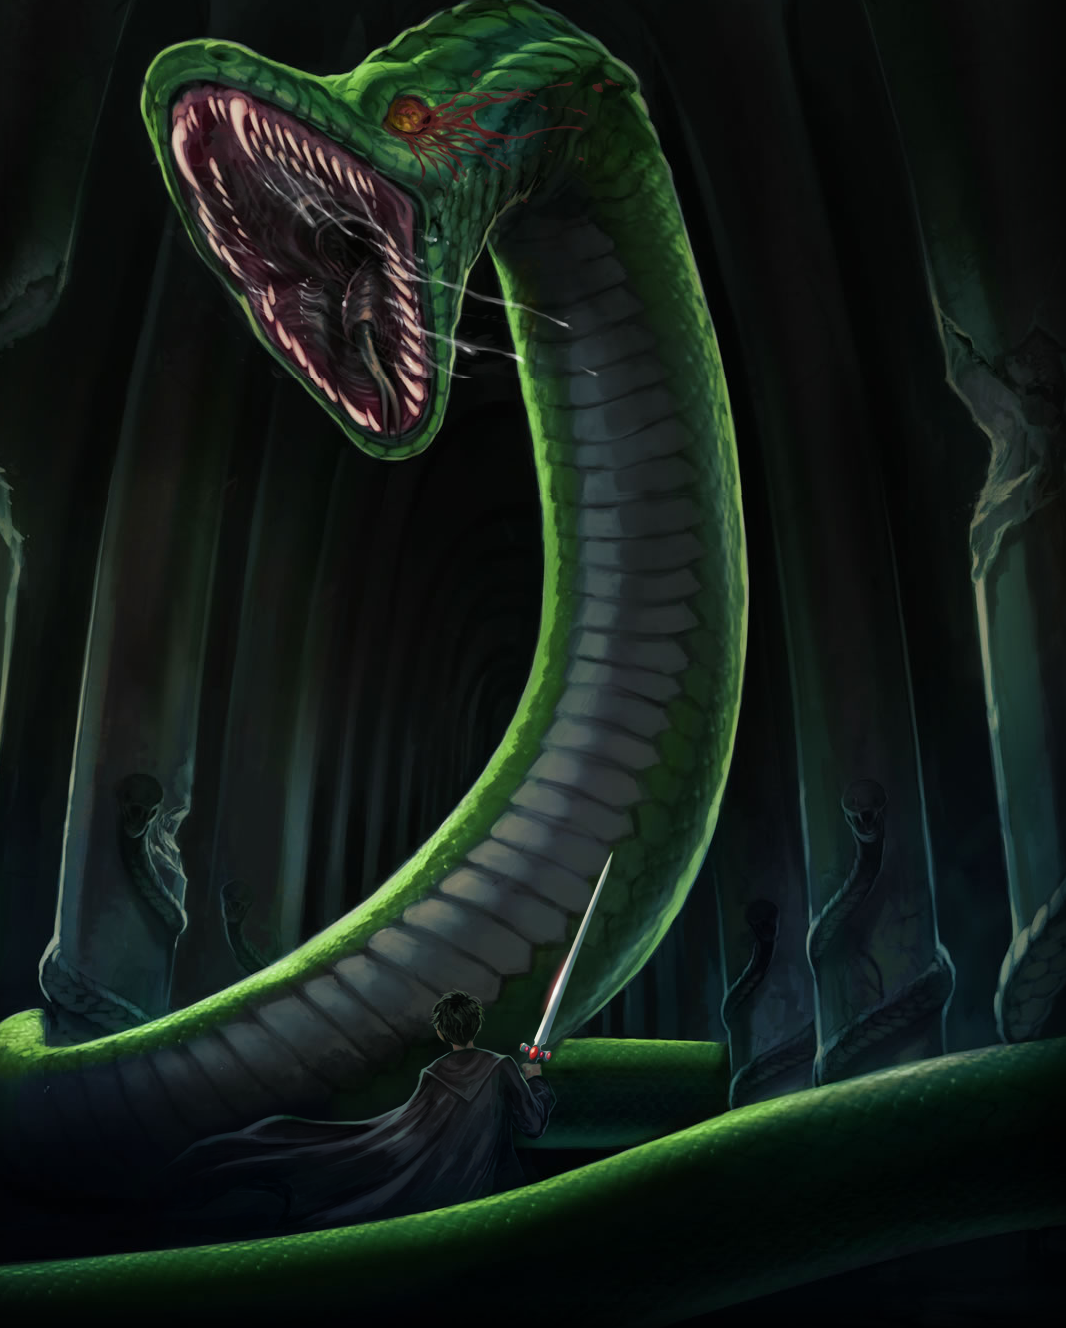 Basilisk snake harry potter